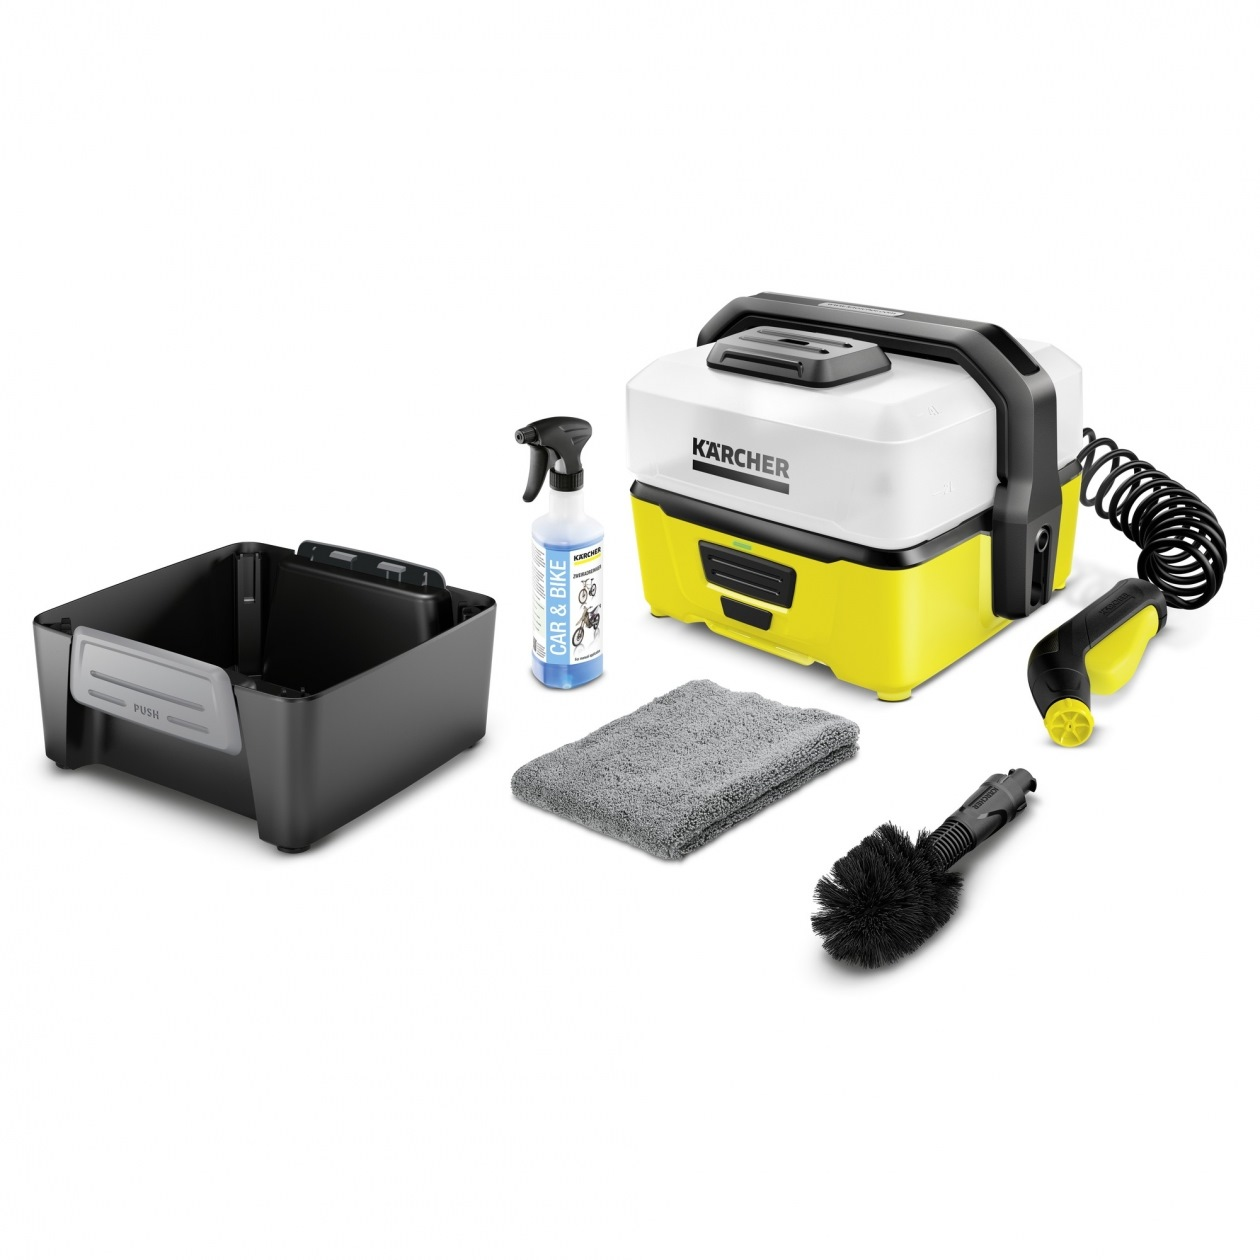 karcher 5 bar oc3 battery high pressure cleaner pressure washers horme singapore. Black Bedroom Furniture Sets. Home Design Ideas